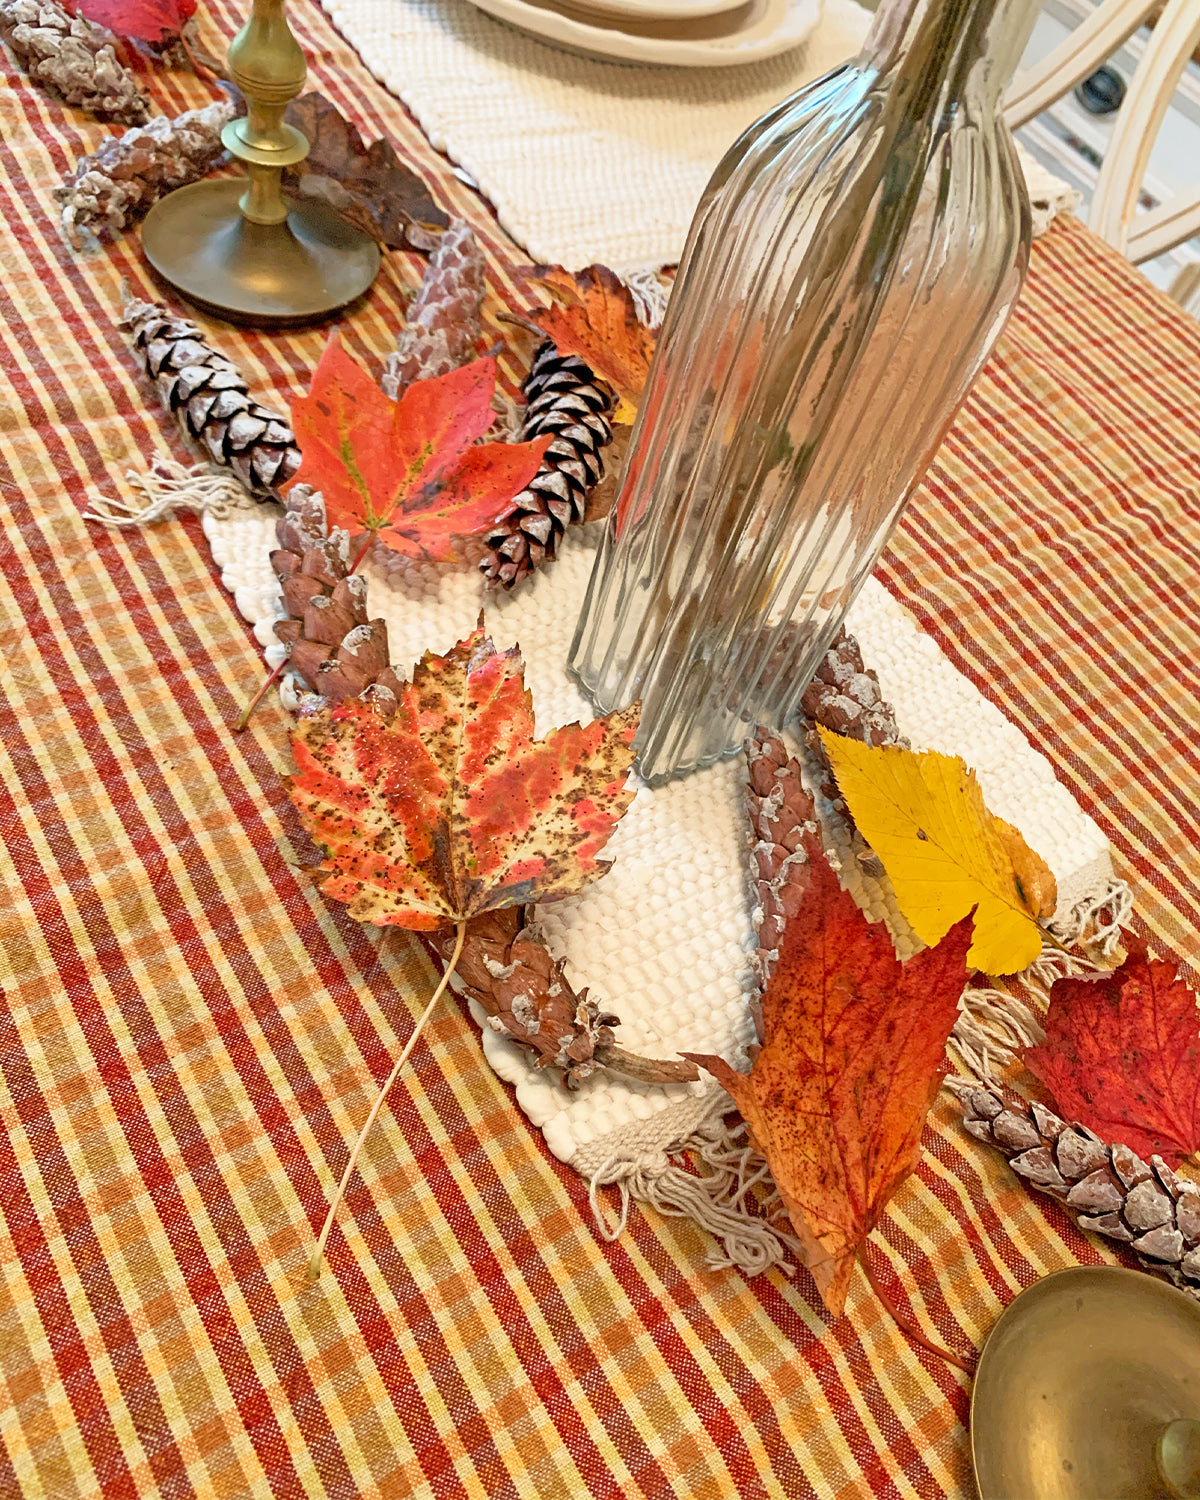 Closeup of table scape with orange and red checkered tablecloth, small white rug hot pad under neath a cluster of red and orange leaves and pinecones, a glass bottle in center filled with dried flowers.